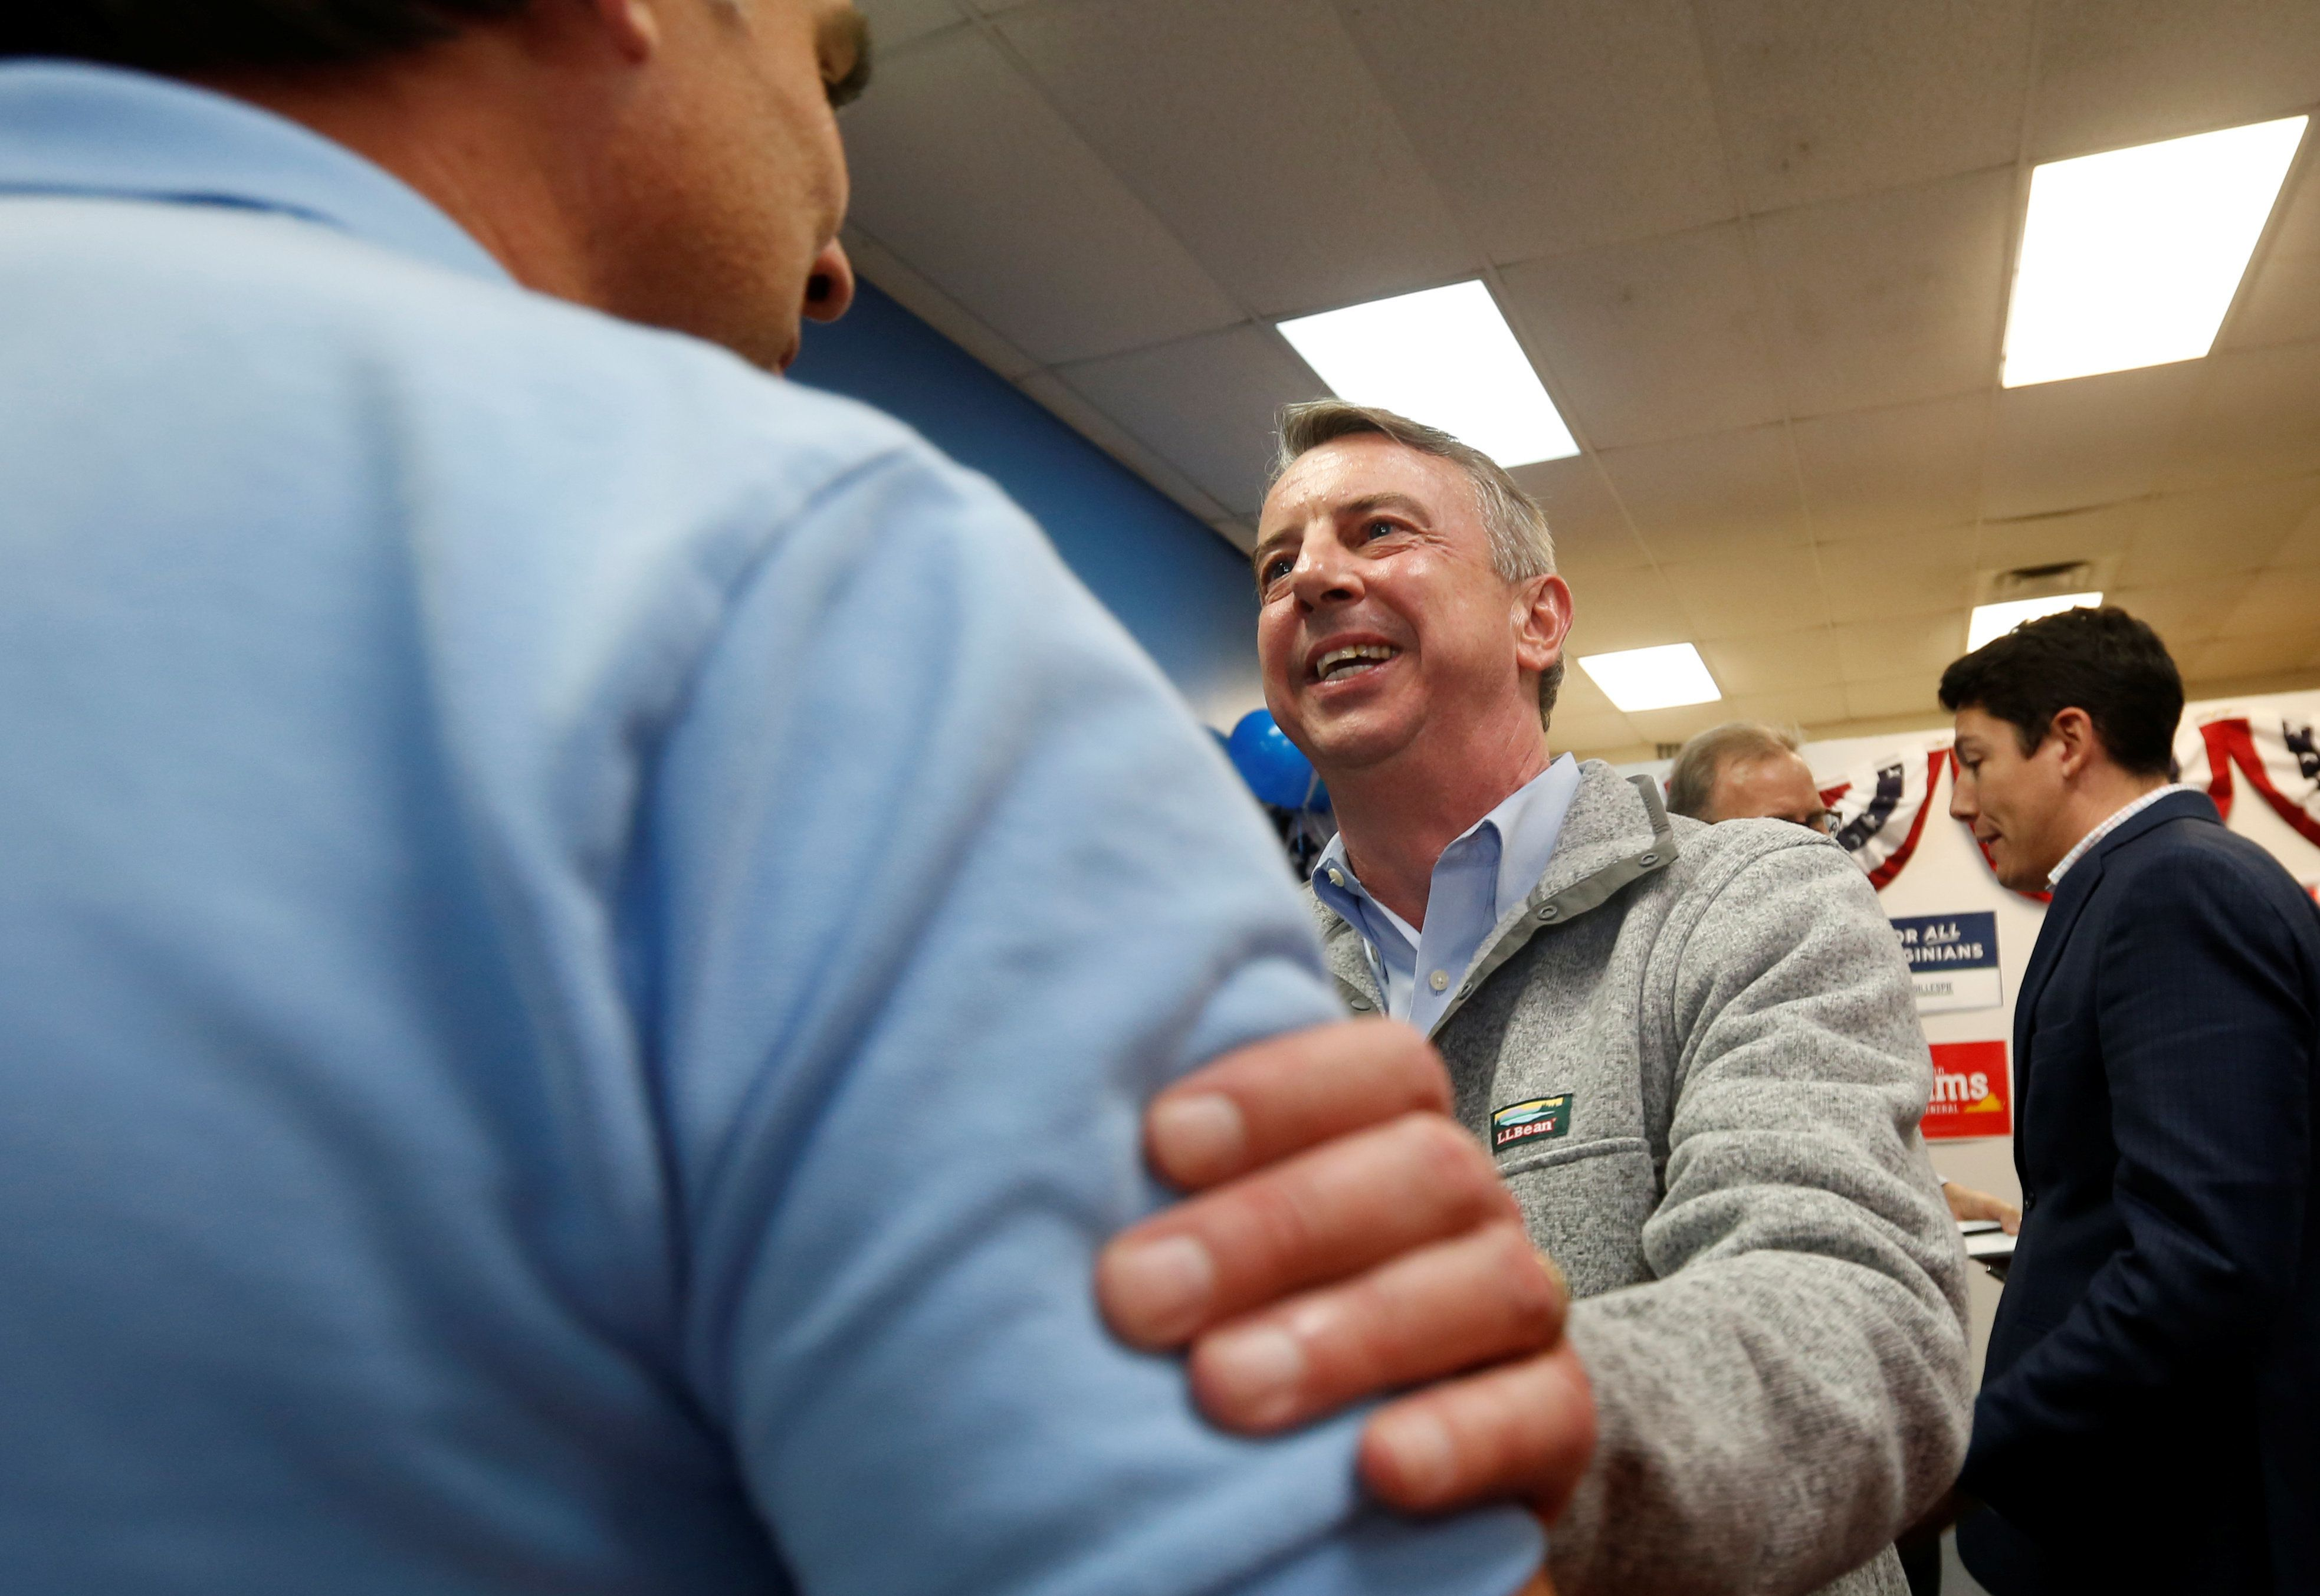 Republican Party contender Ed Gillespie, who is campaigning to be elected as Virginia's governor, greets supporters during a rally in Chesapeake, Virginia, U.S. November 6, 2017.  REUTERS/Julia Rendleman